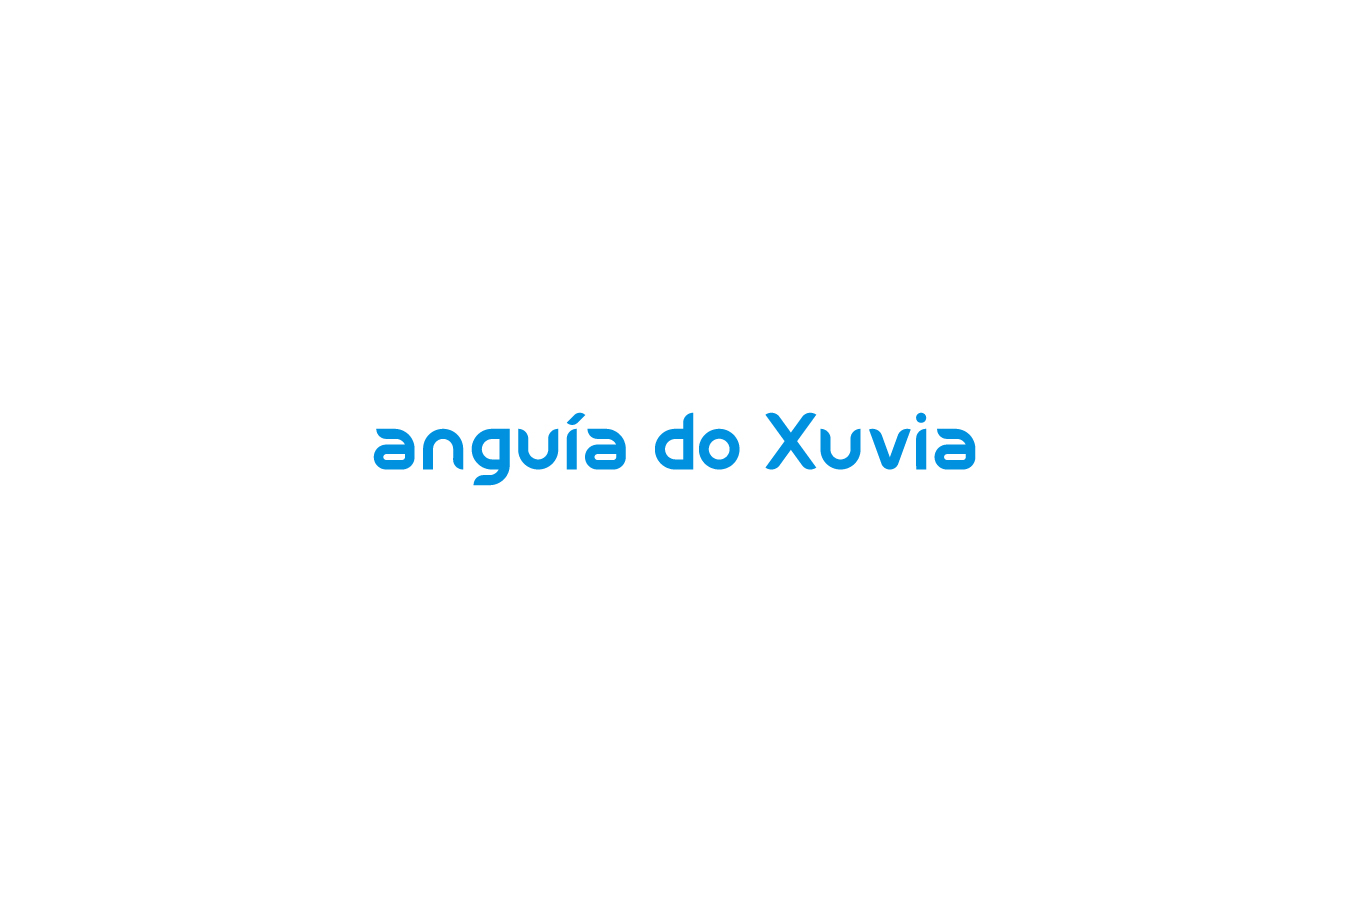 ANGUÍA DO XUVIA